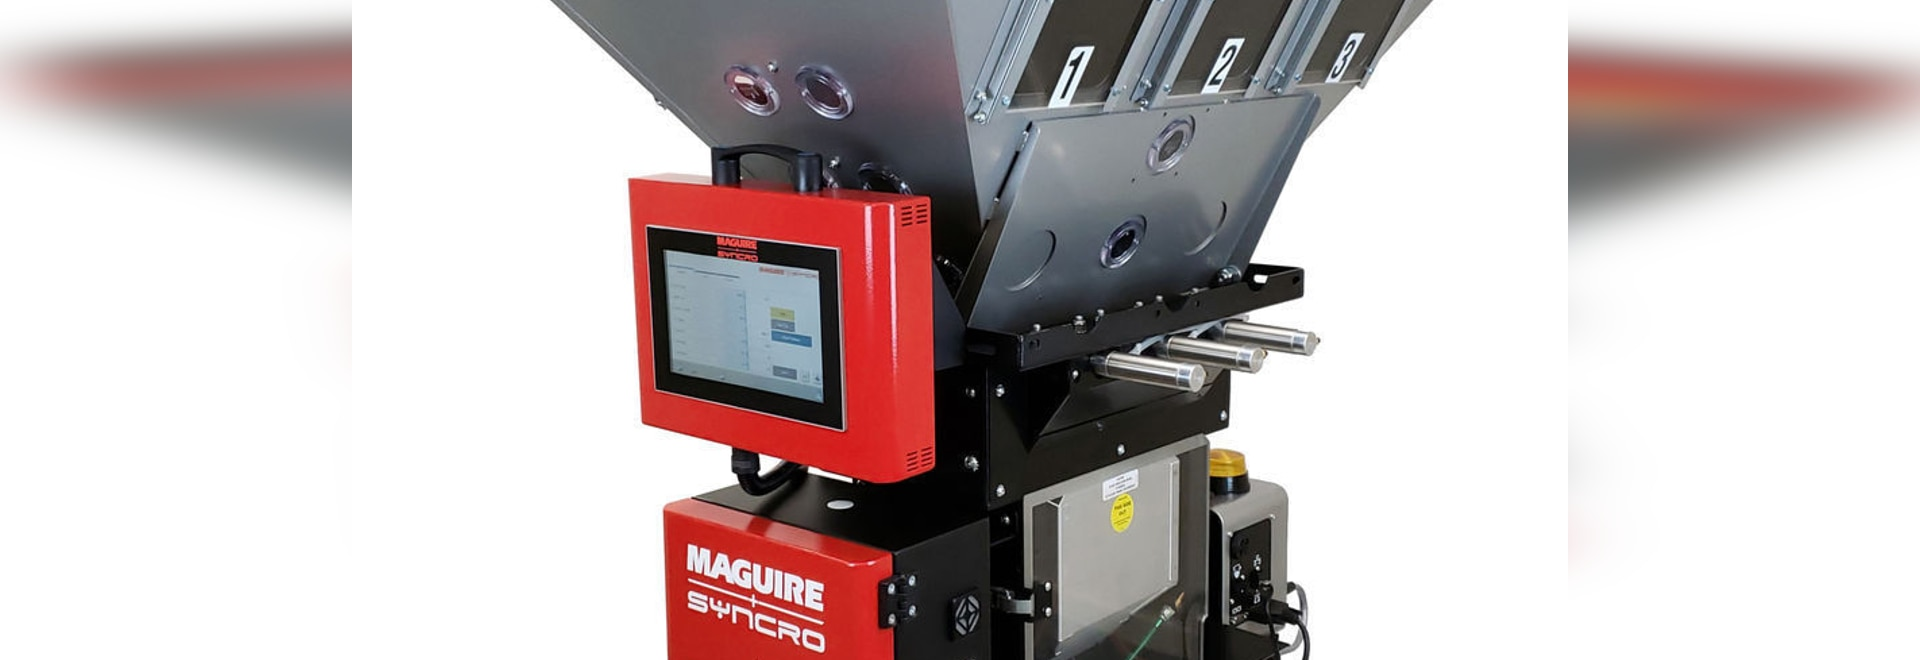 Weigh Extrusion Blender: the WXB devices come in three sizes (© Maguire)